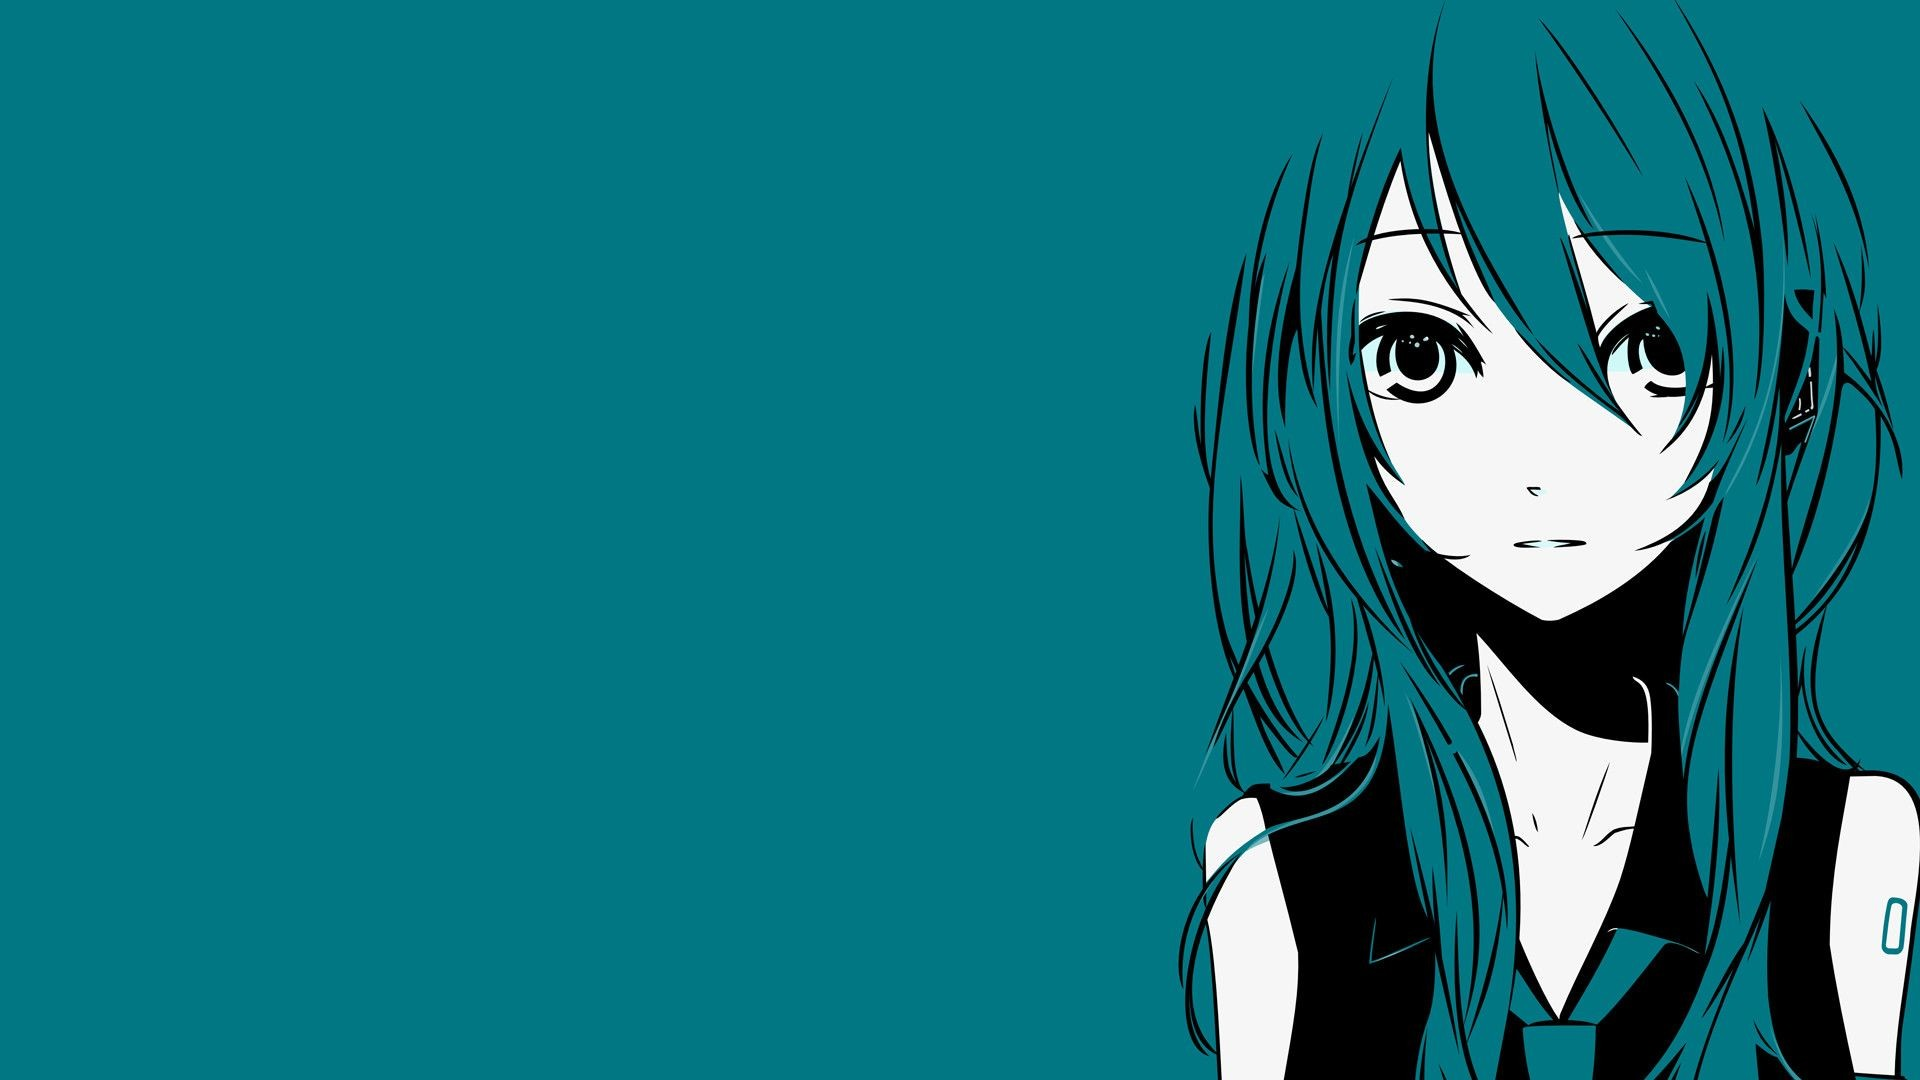 Anime wallpapers 1920x1080 81 images - 1920x1080 wallpapers anime ...